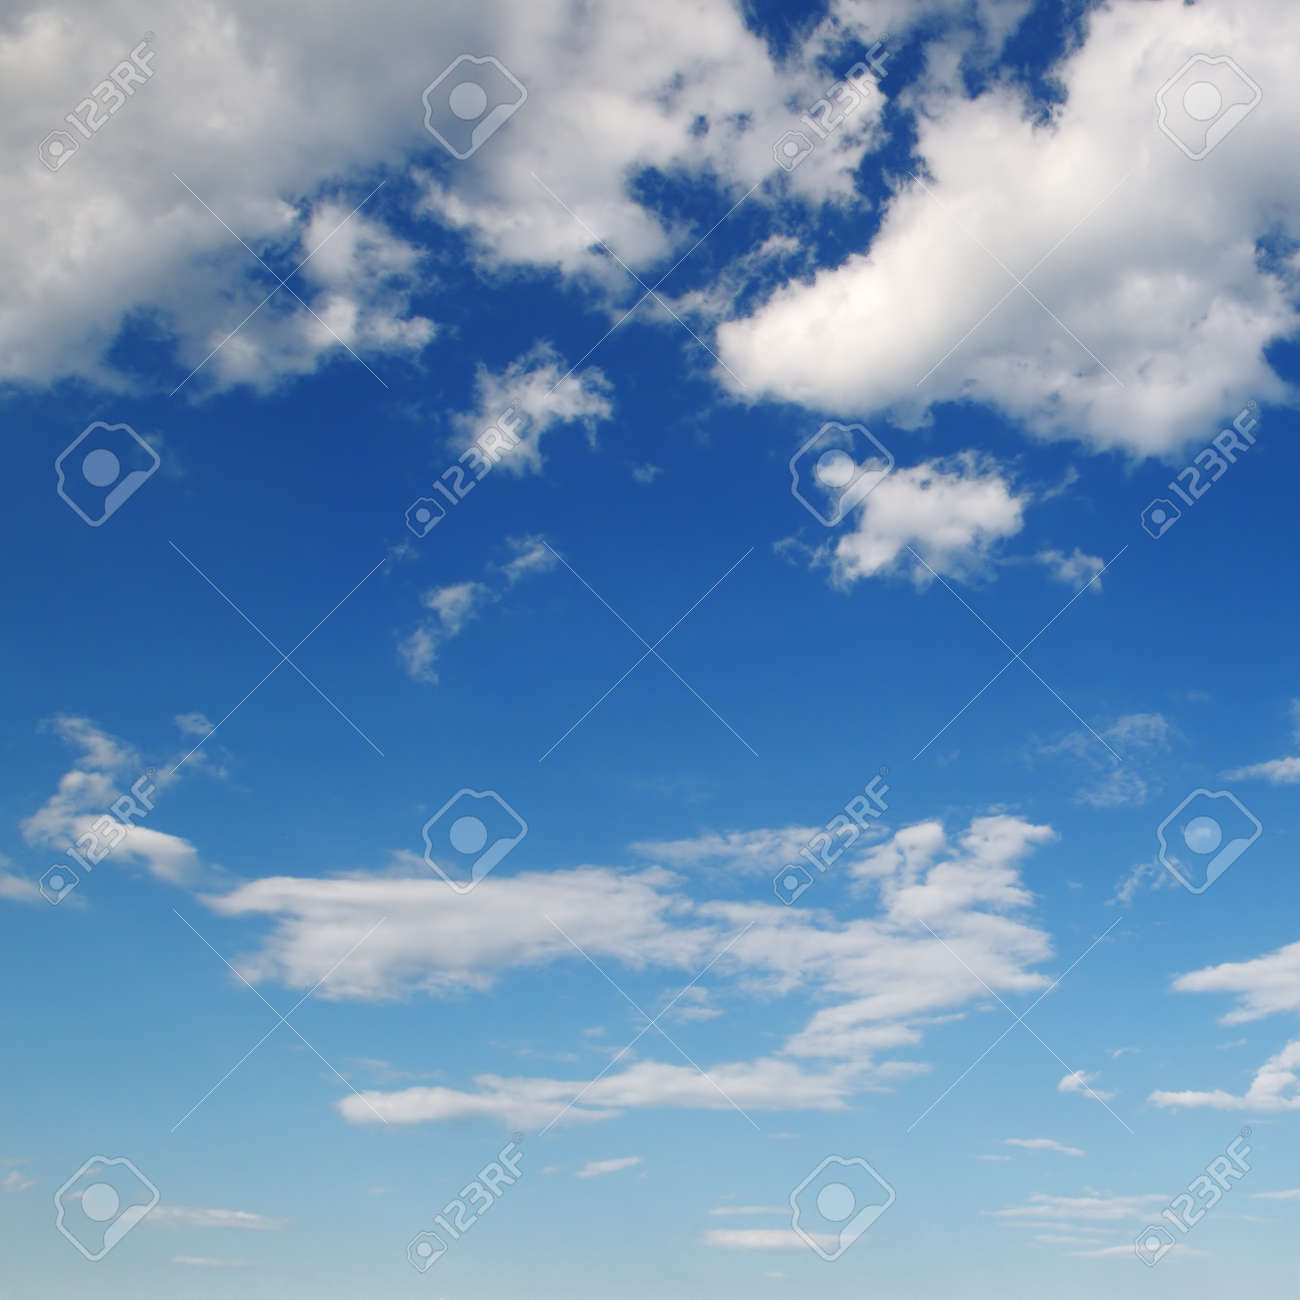 white fluffy clouds in the blue sky - 45051744